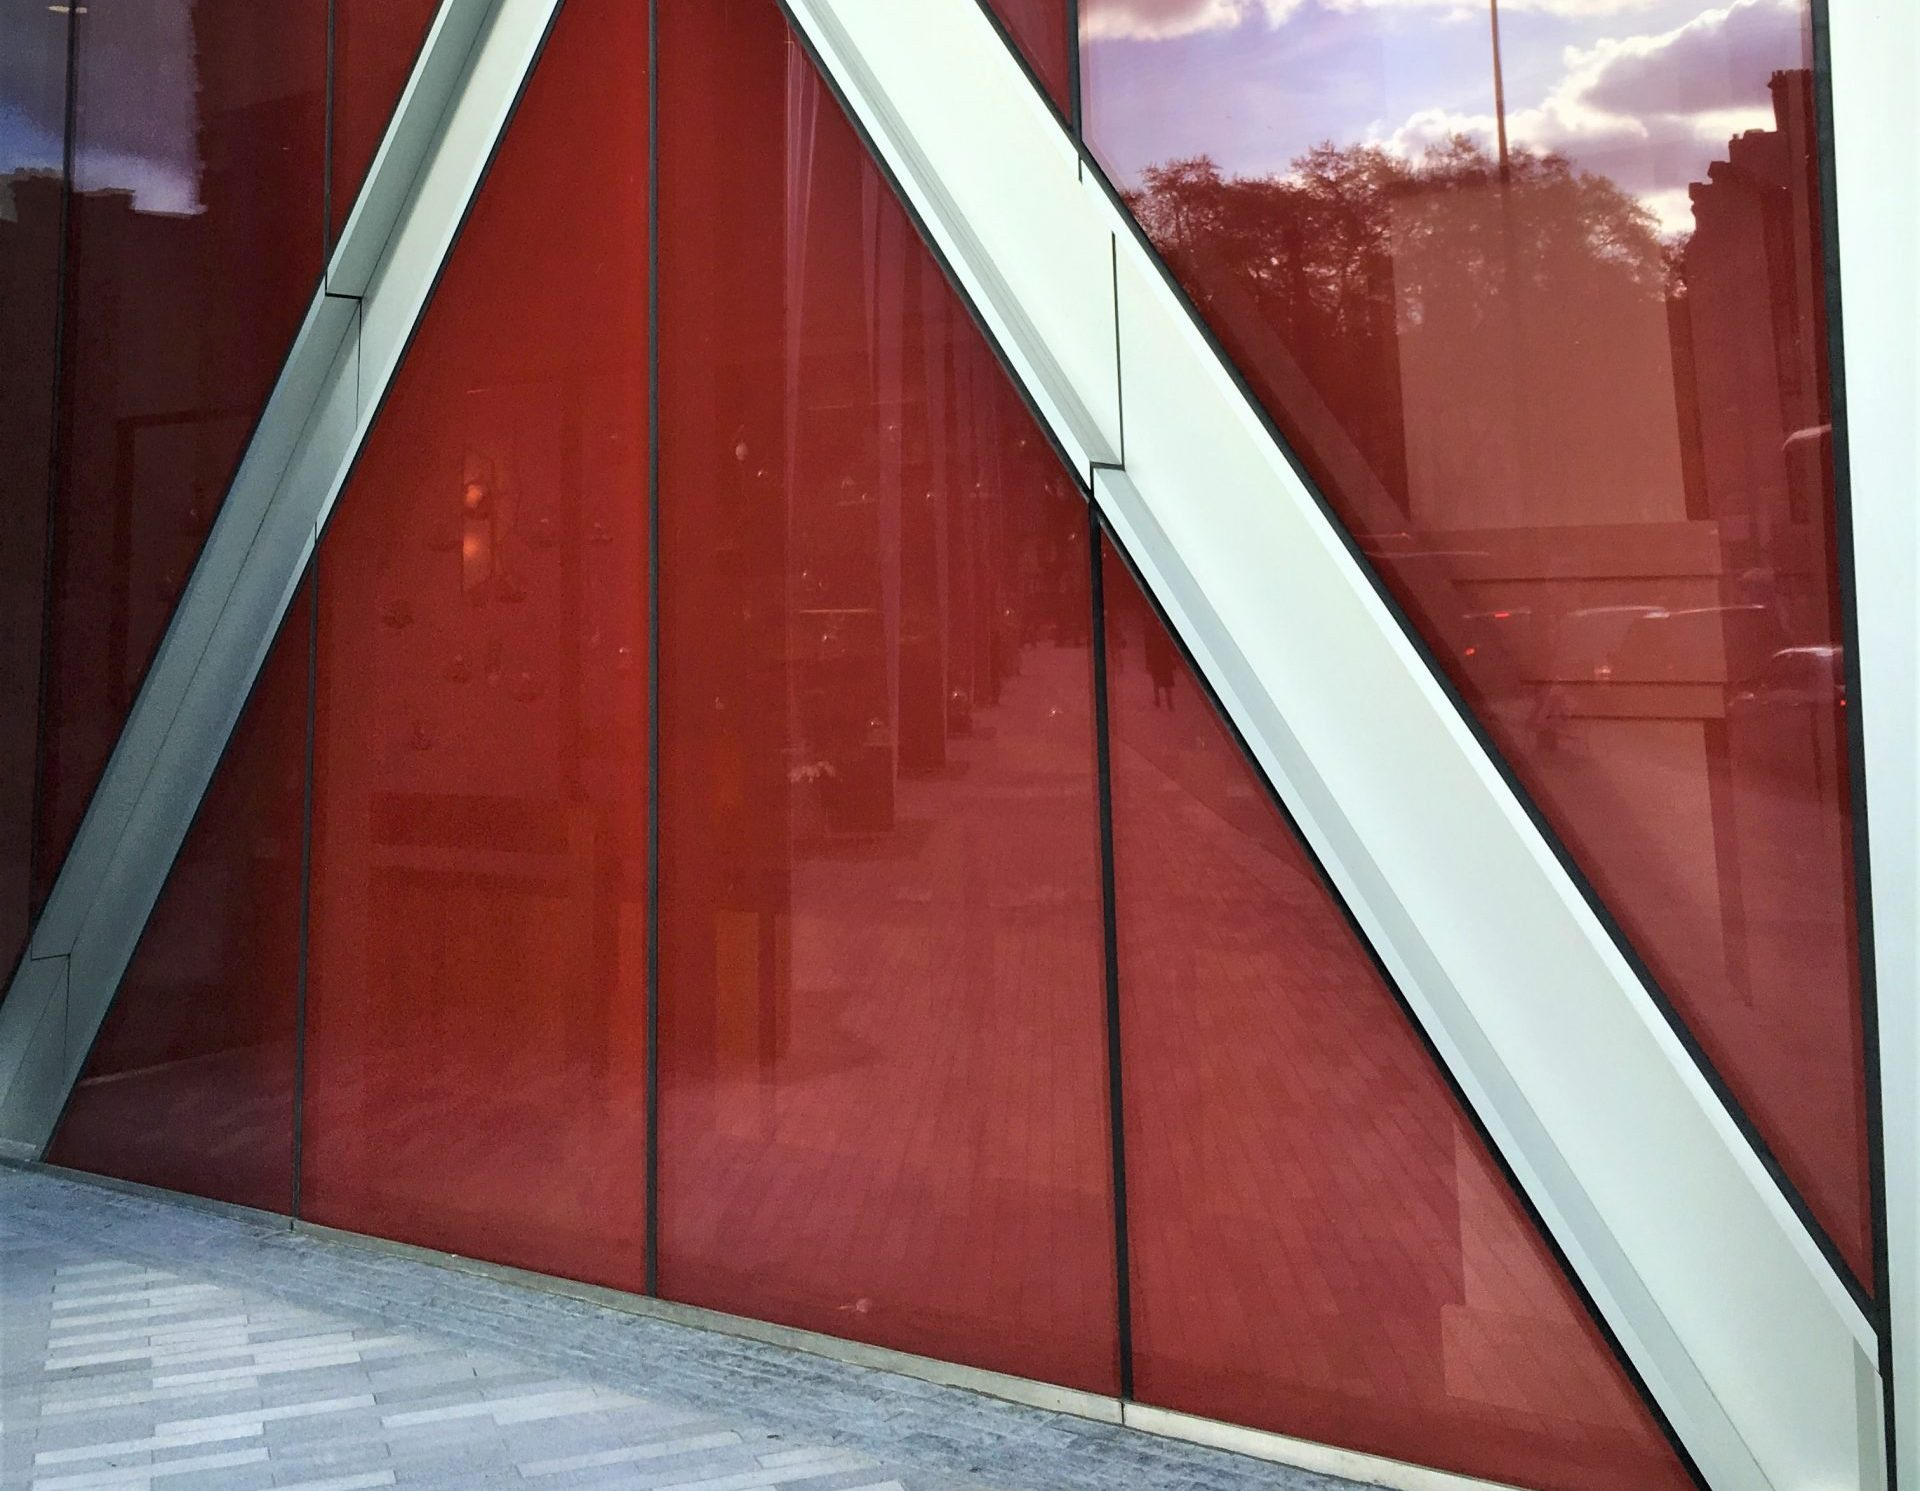 Nova Victoria red fritted glass facade